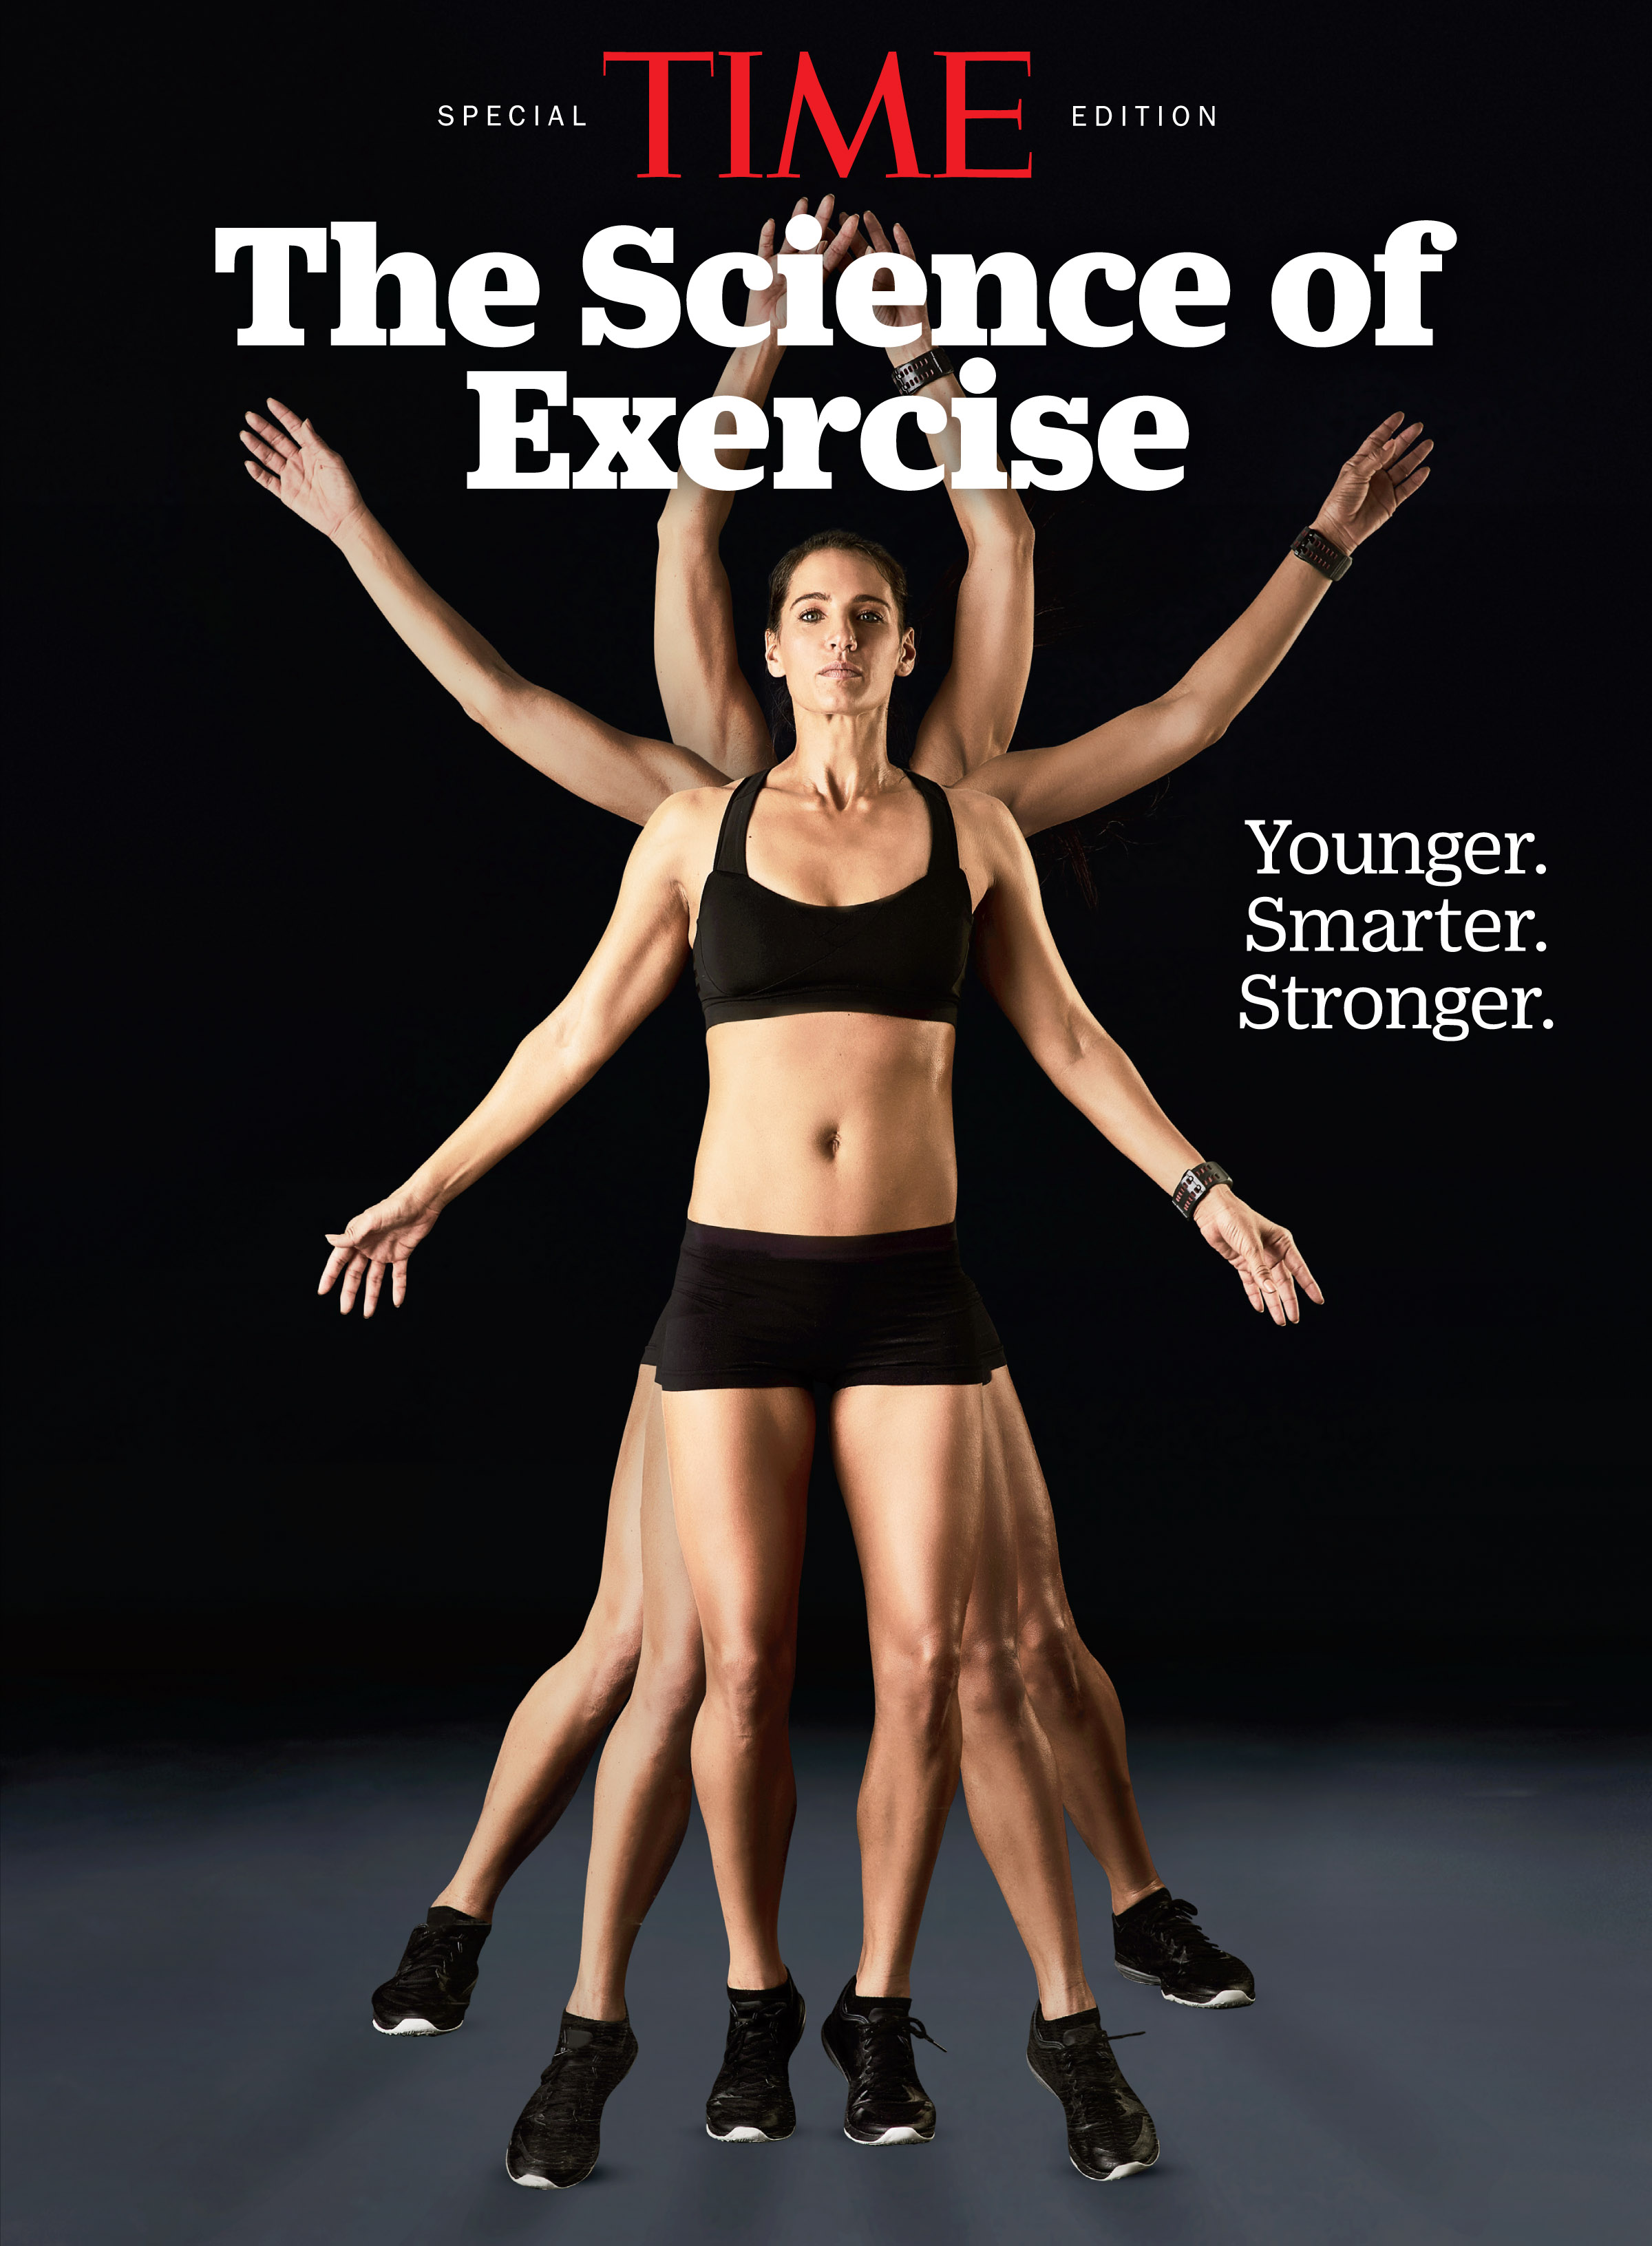 confessions of a couch potato from an ex- taekwondo teacher Confessions of a Couch Potato From an Ex- Taekwondo Teacher timescienceexercise2017baz cover1